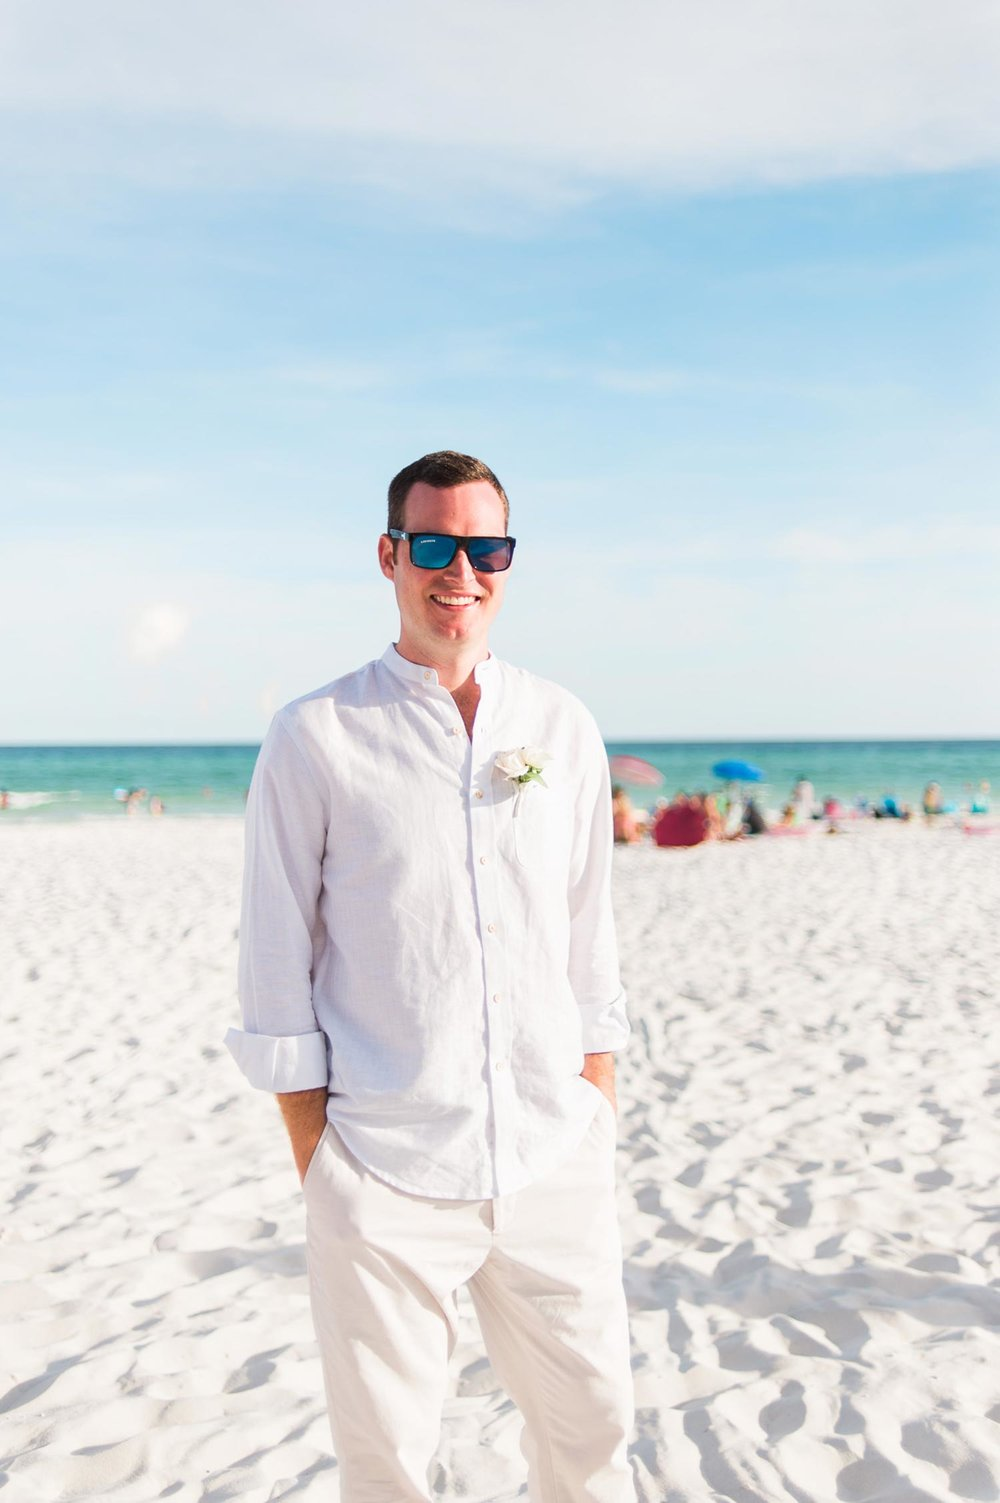 destin-beach-wedding-photographer (4).JPG